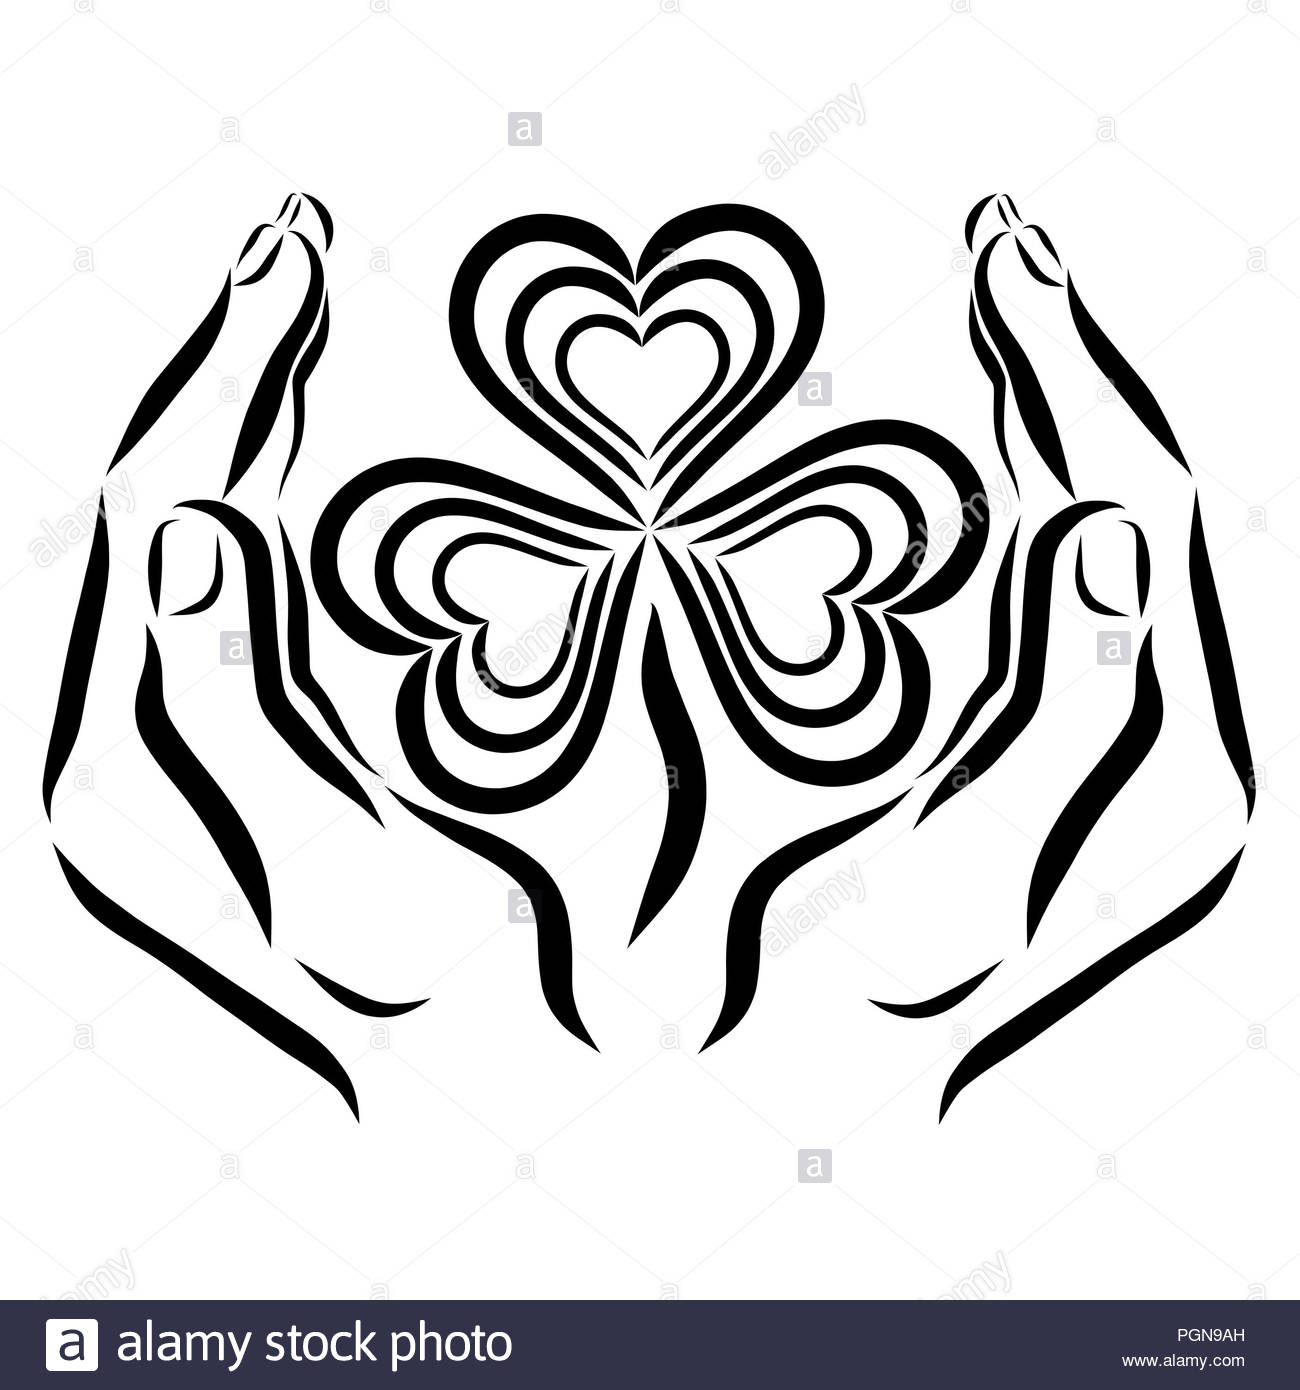 Clover with three leaves and hearts in the hands of man - Stock Image